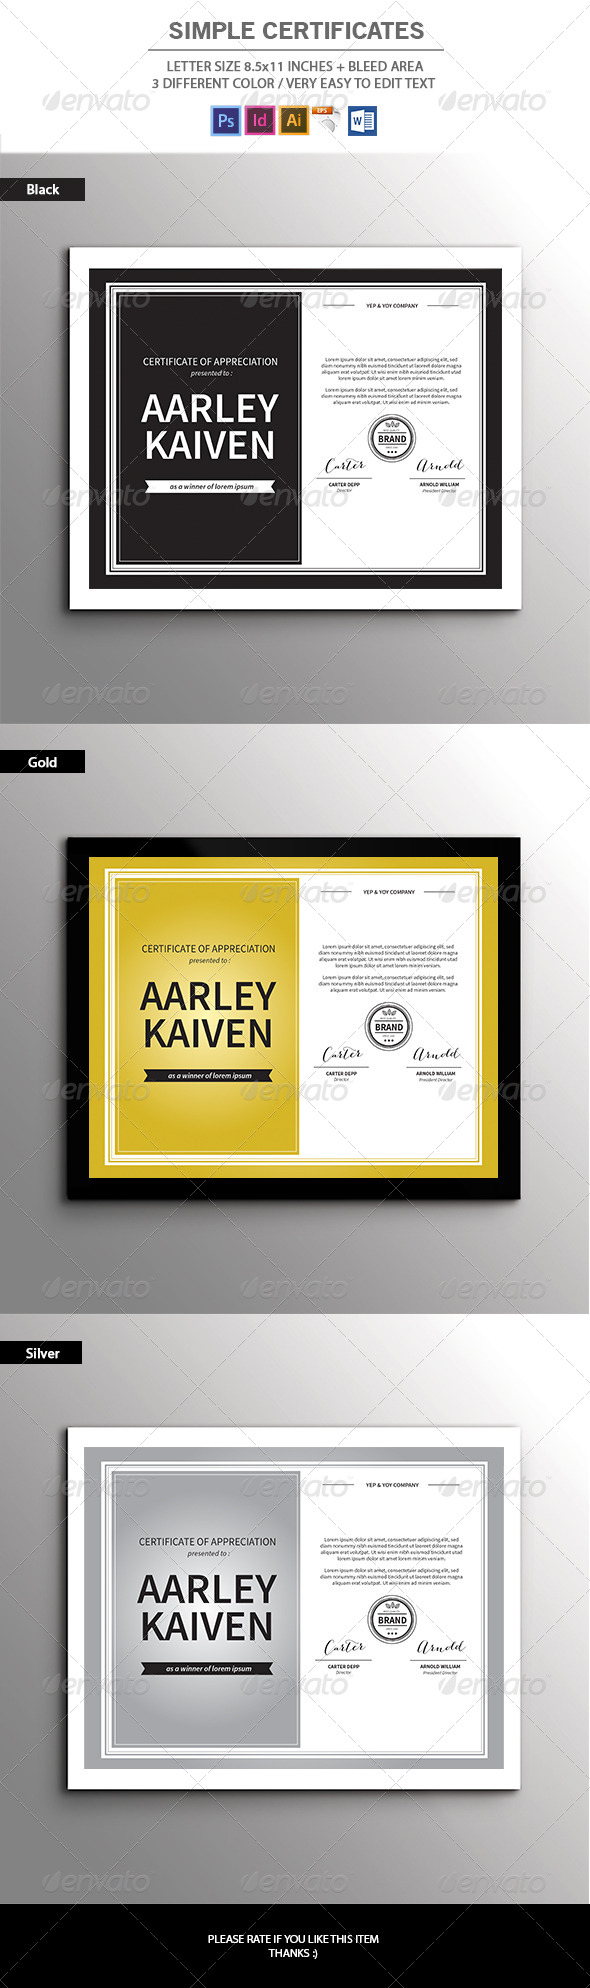 GraphicRiver Simple Certificates 7649708